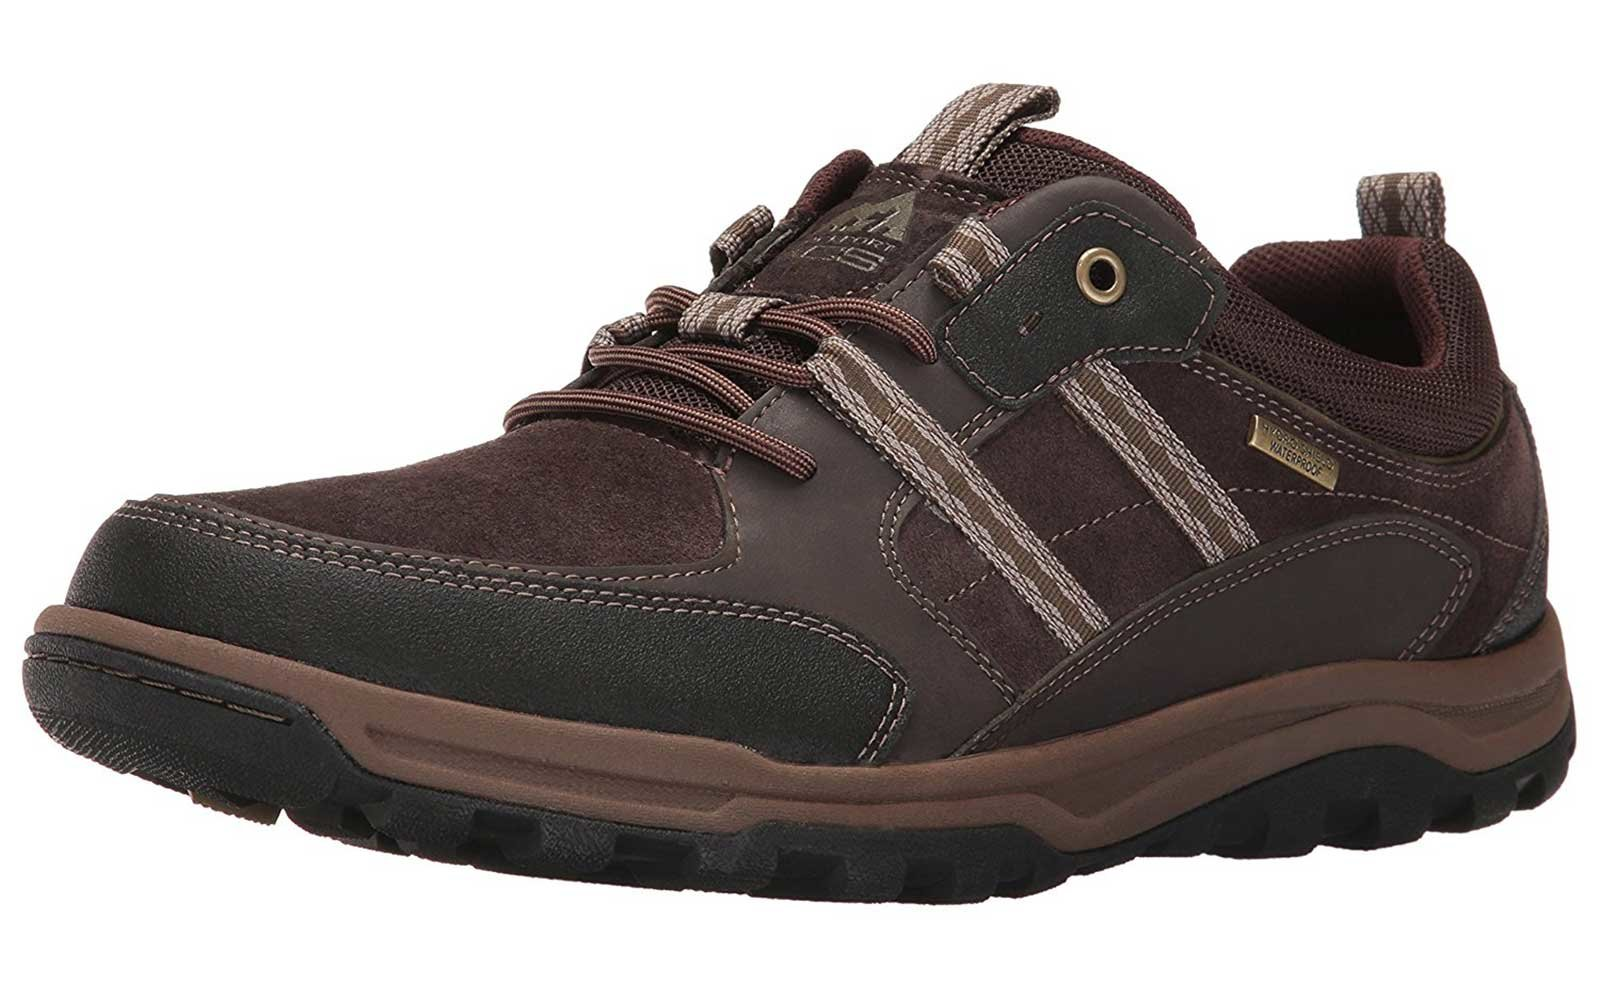 Rockport Trail Technique Waterproof Oxford Walking Shoe